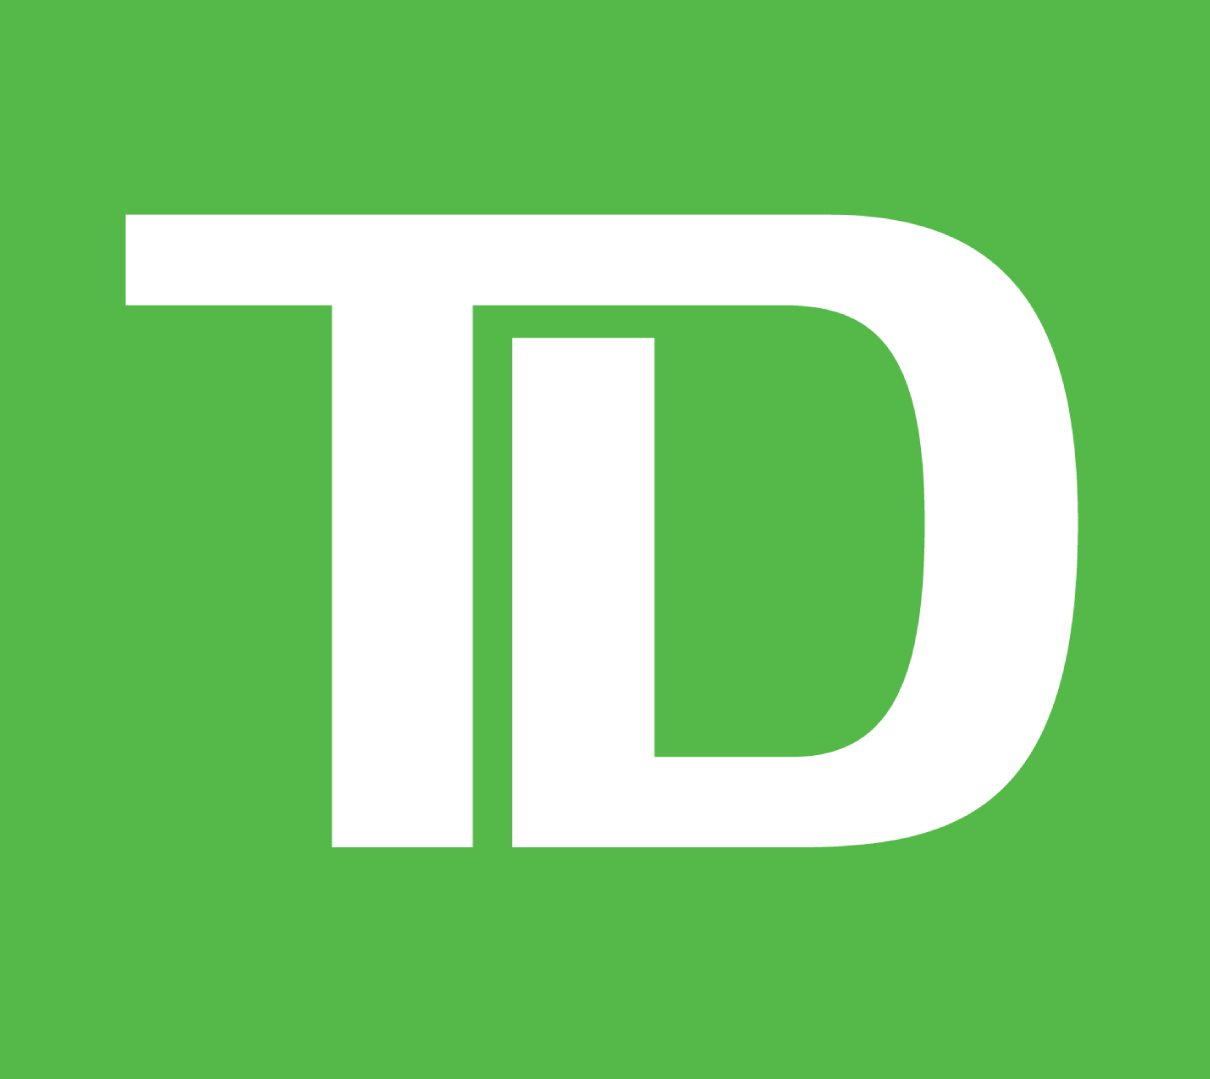 TD-Bank-Financial-Group-Logo-Vector.jpg